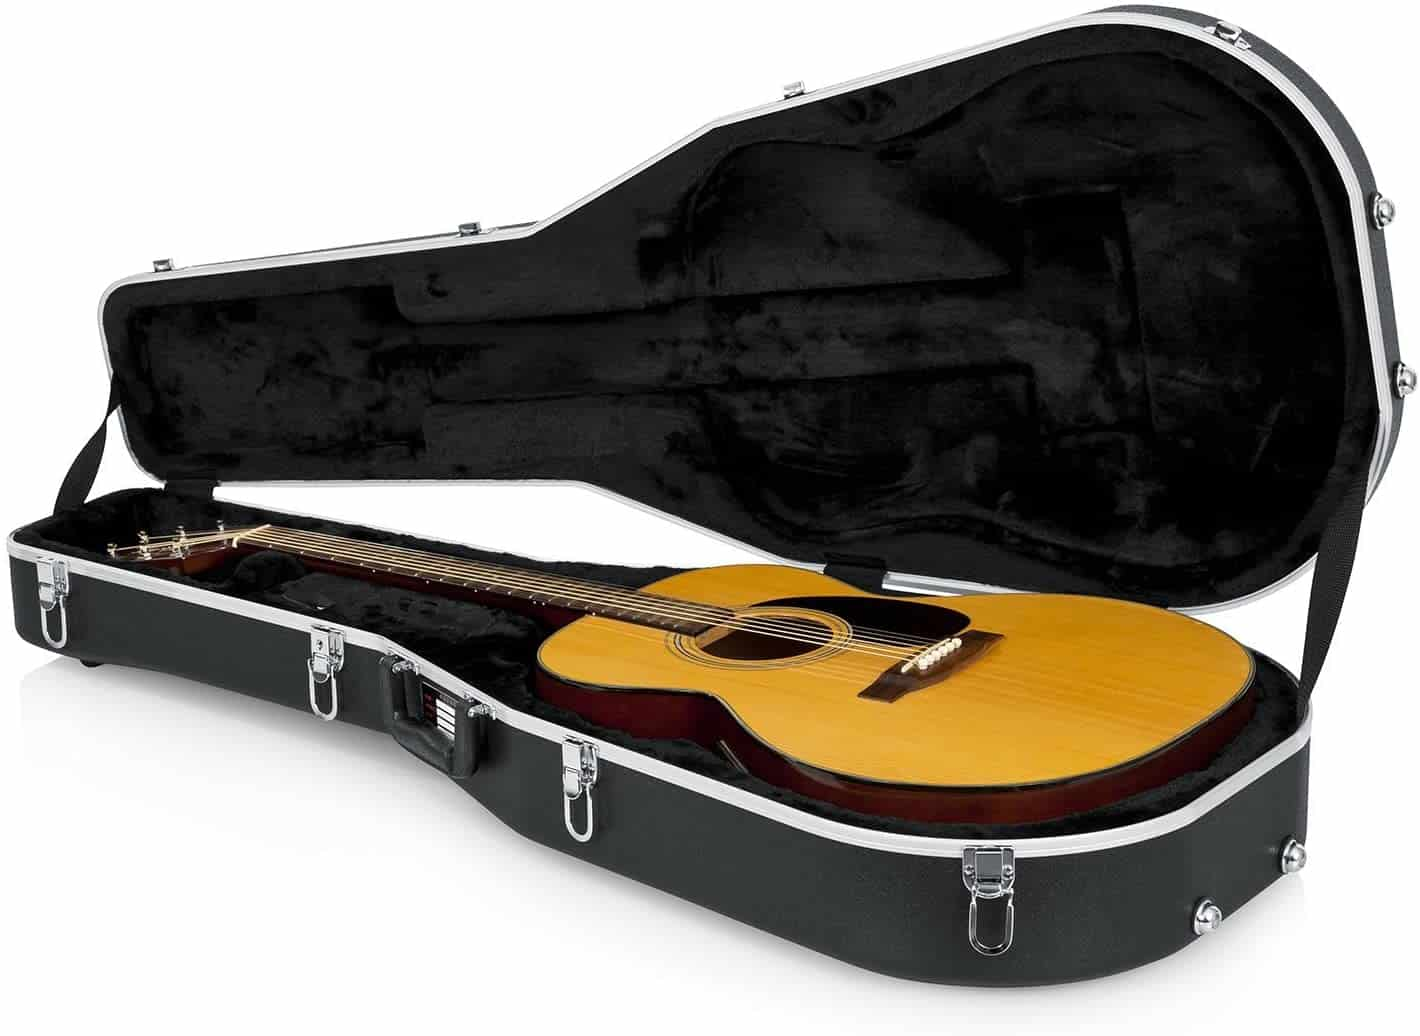 Best case for acoustic guitar: Gator Cases Deluxe ABS Molded Dreadnought Style